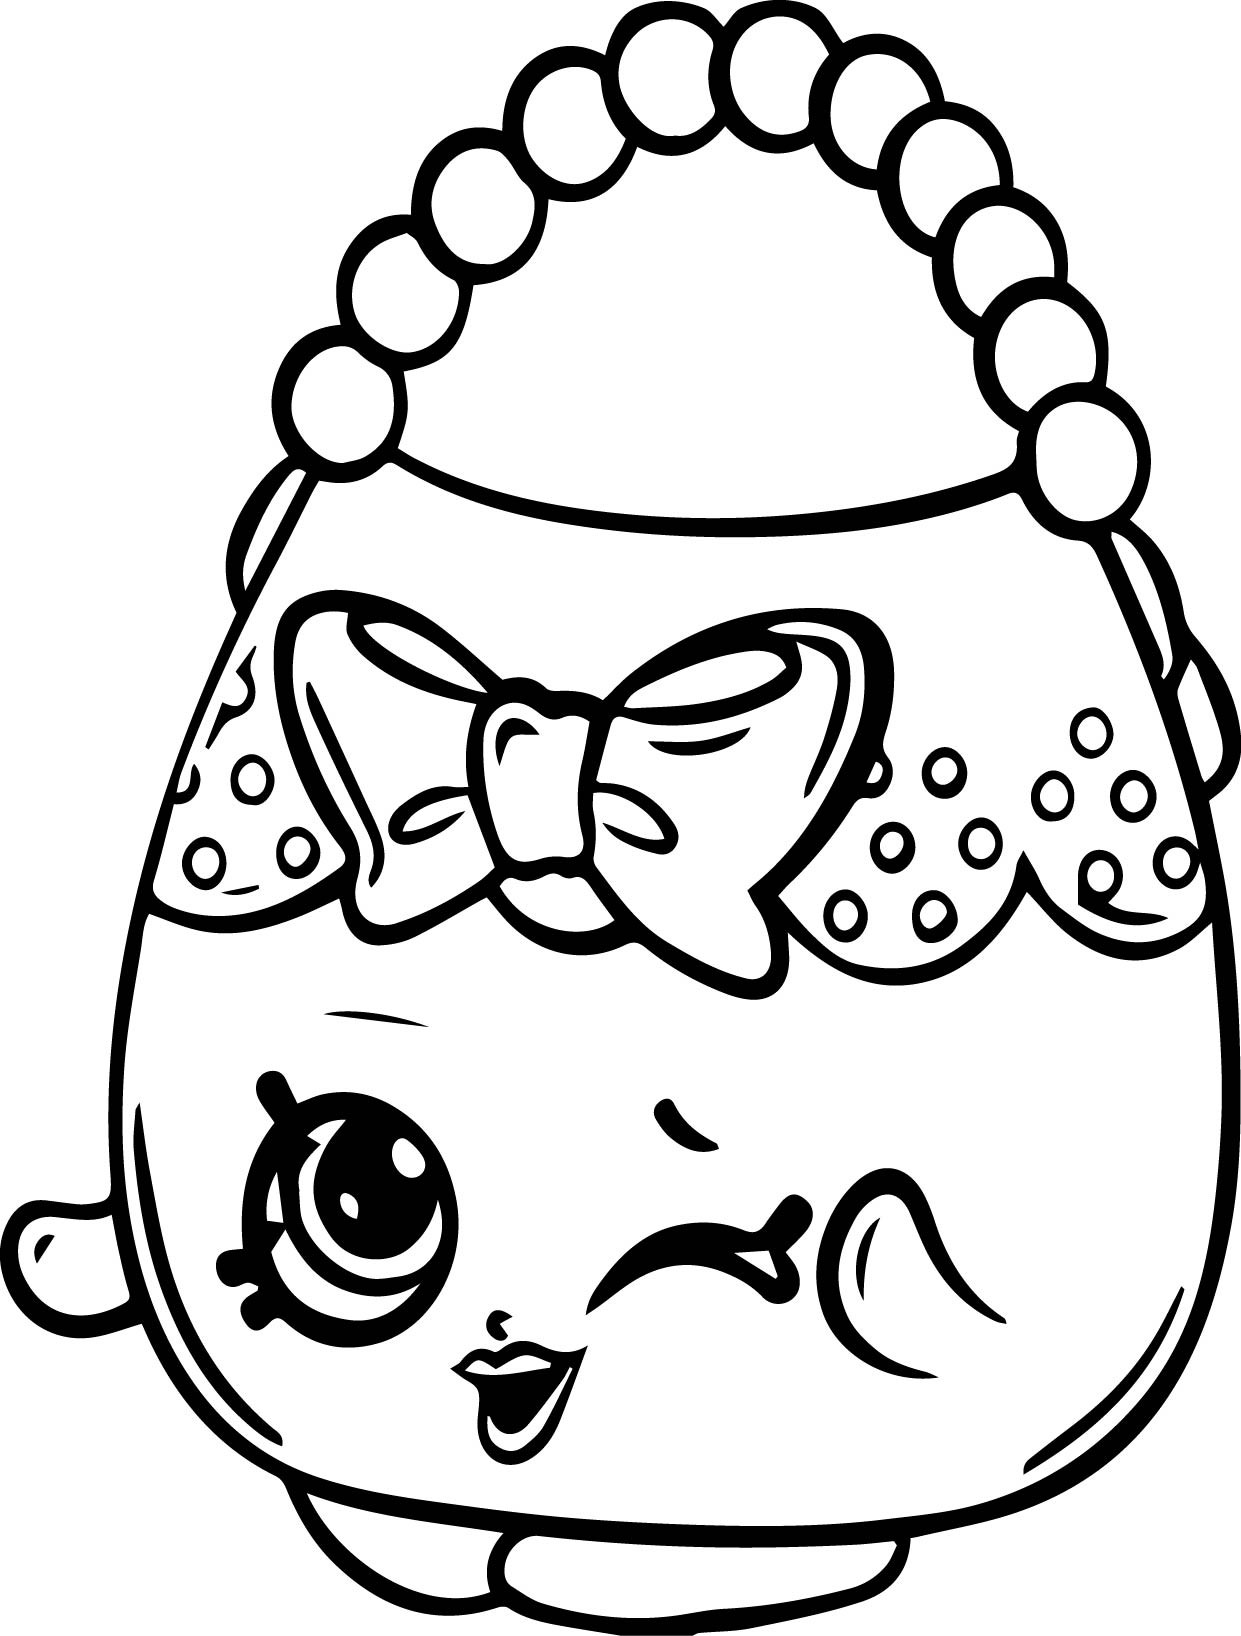 1241x1636 Shopkins Coloring Pages To Print Free Coloring Pages For Girls